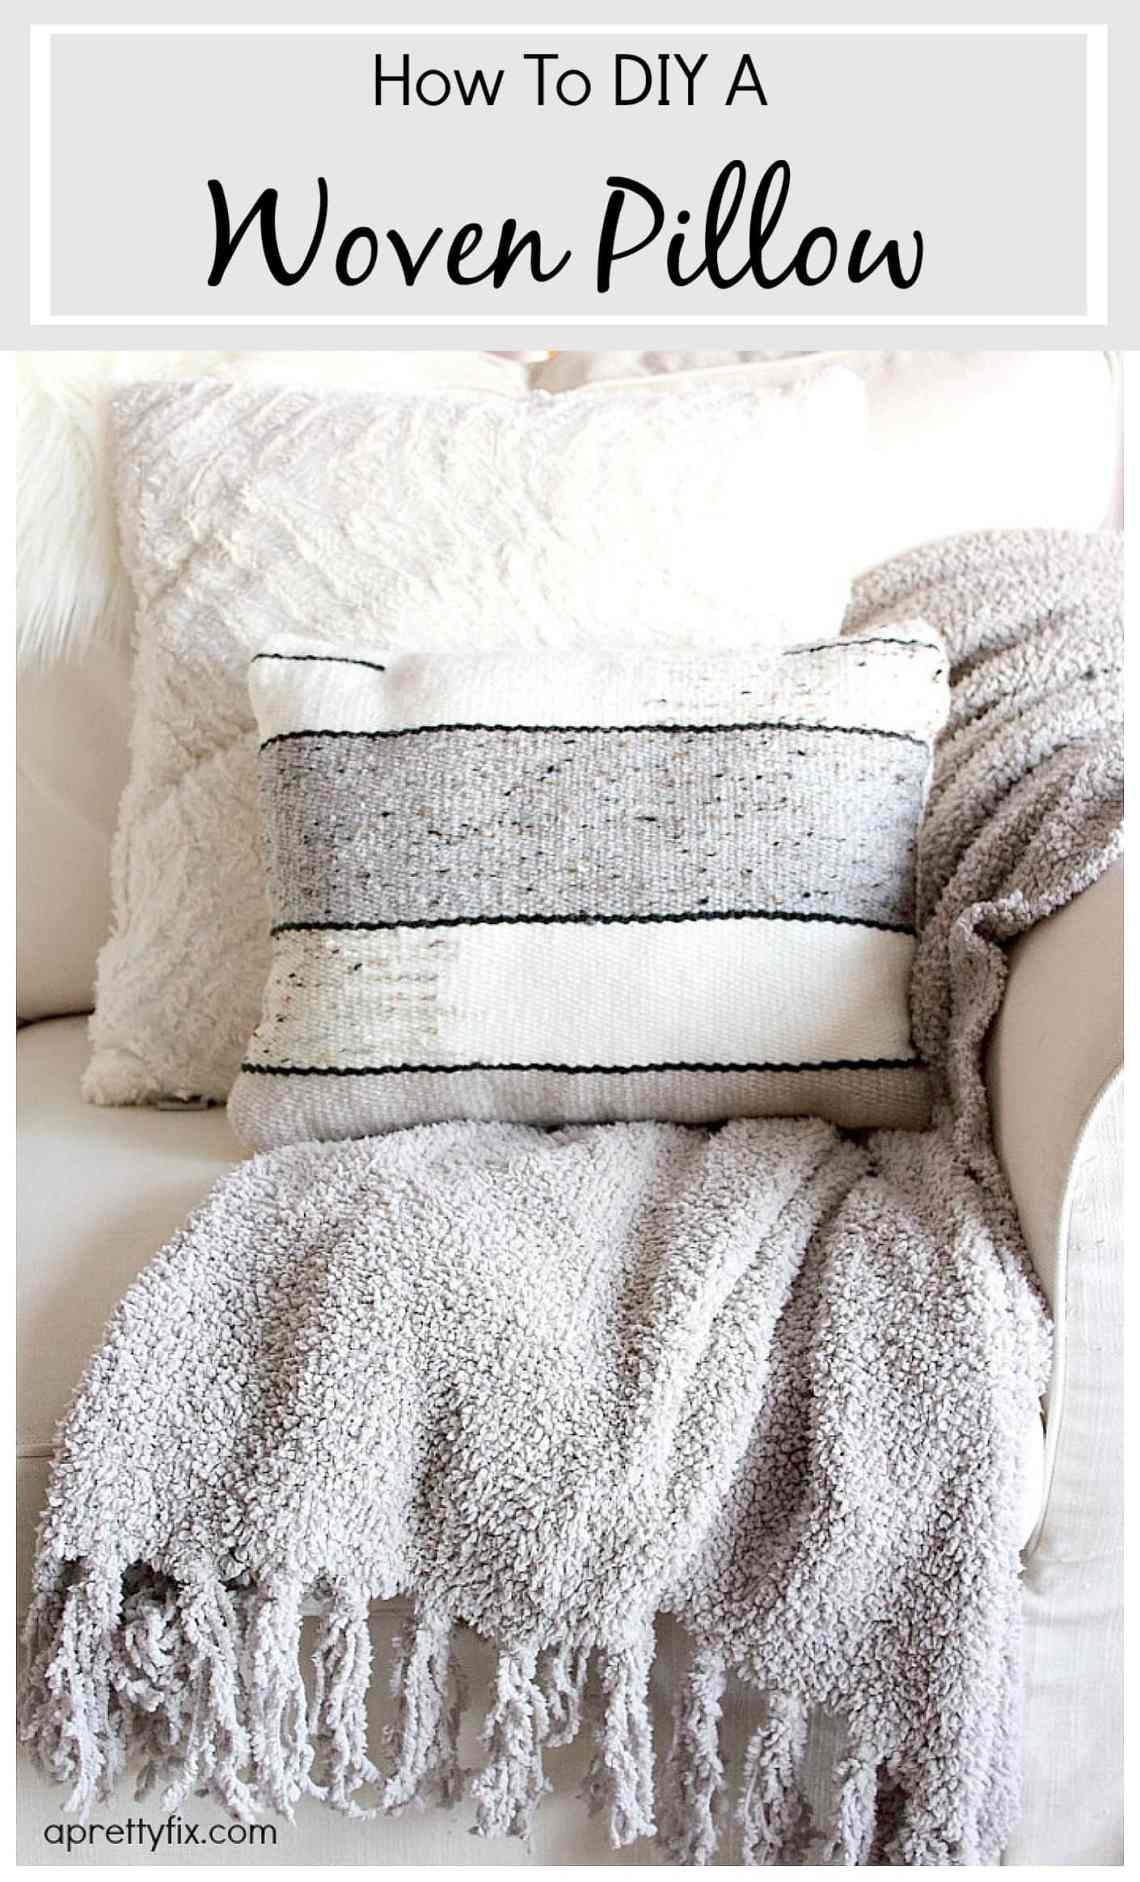 How To Diy A Woven Pillow A Pretty Fix